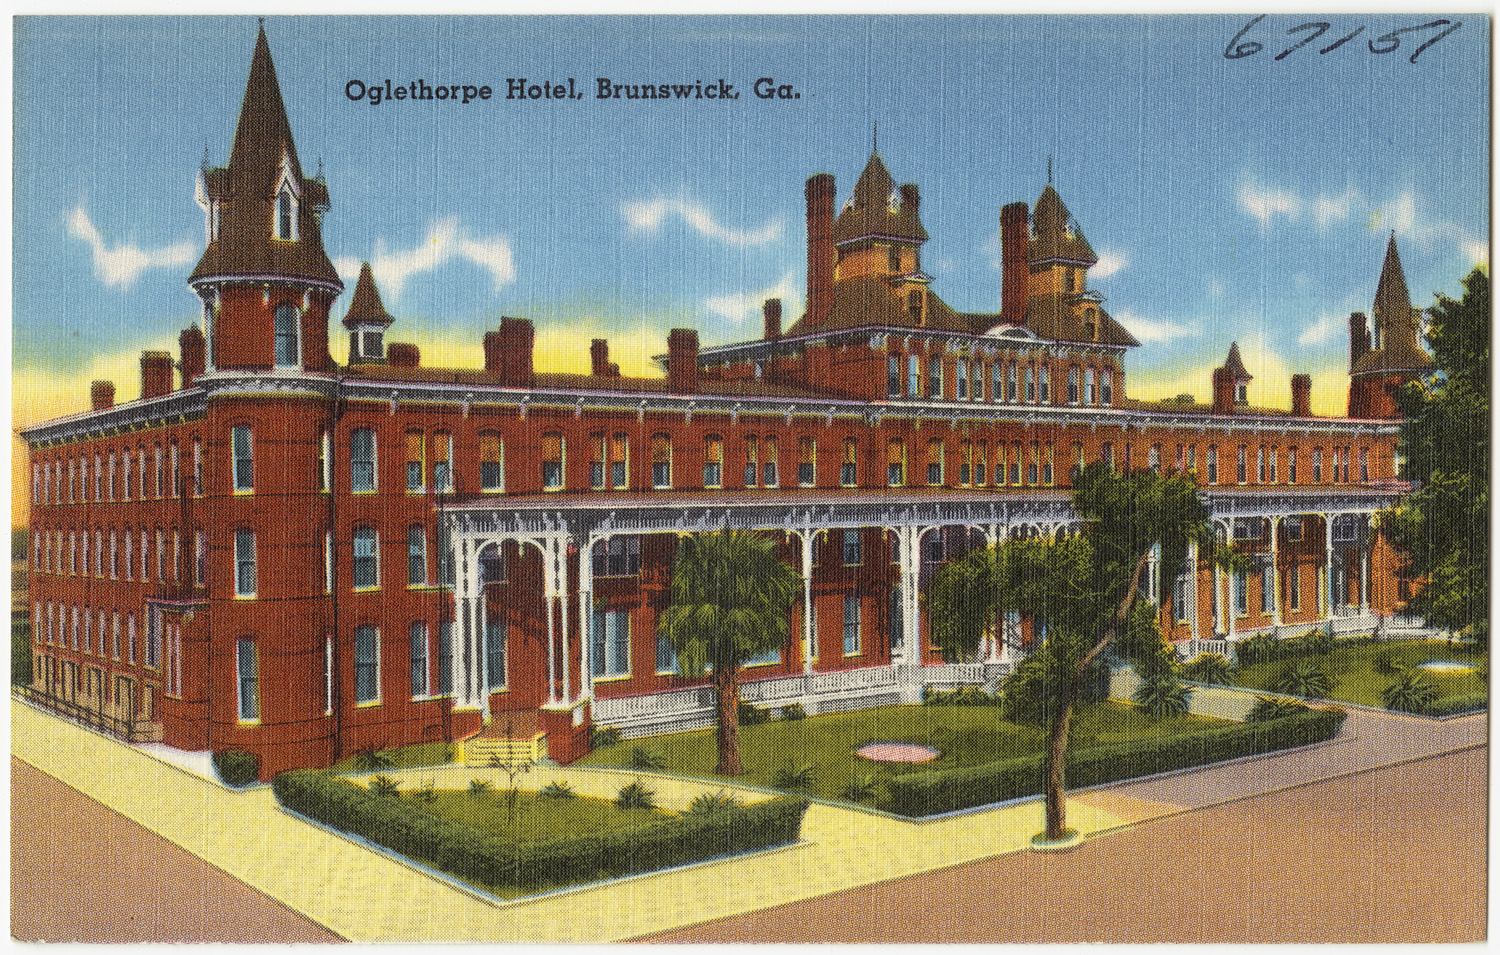 Hotels In Boston >> File:Oglethorpe Hotel, Brunswick, Ga. (8367042937).jpg ...